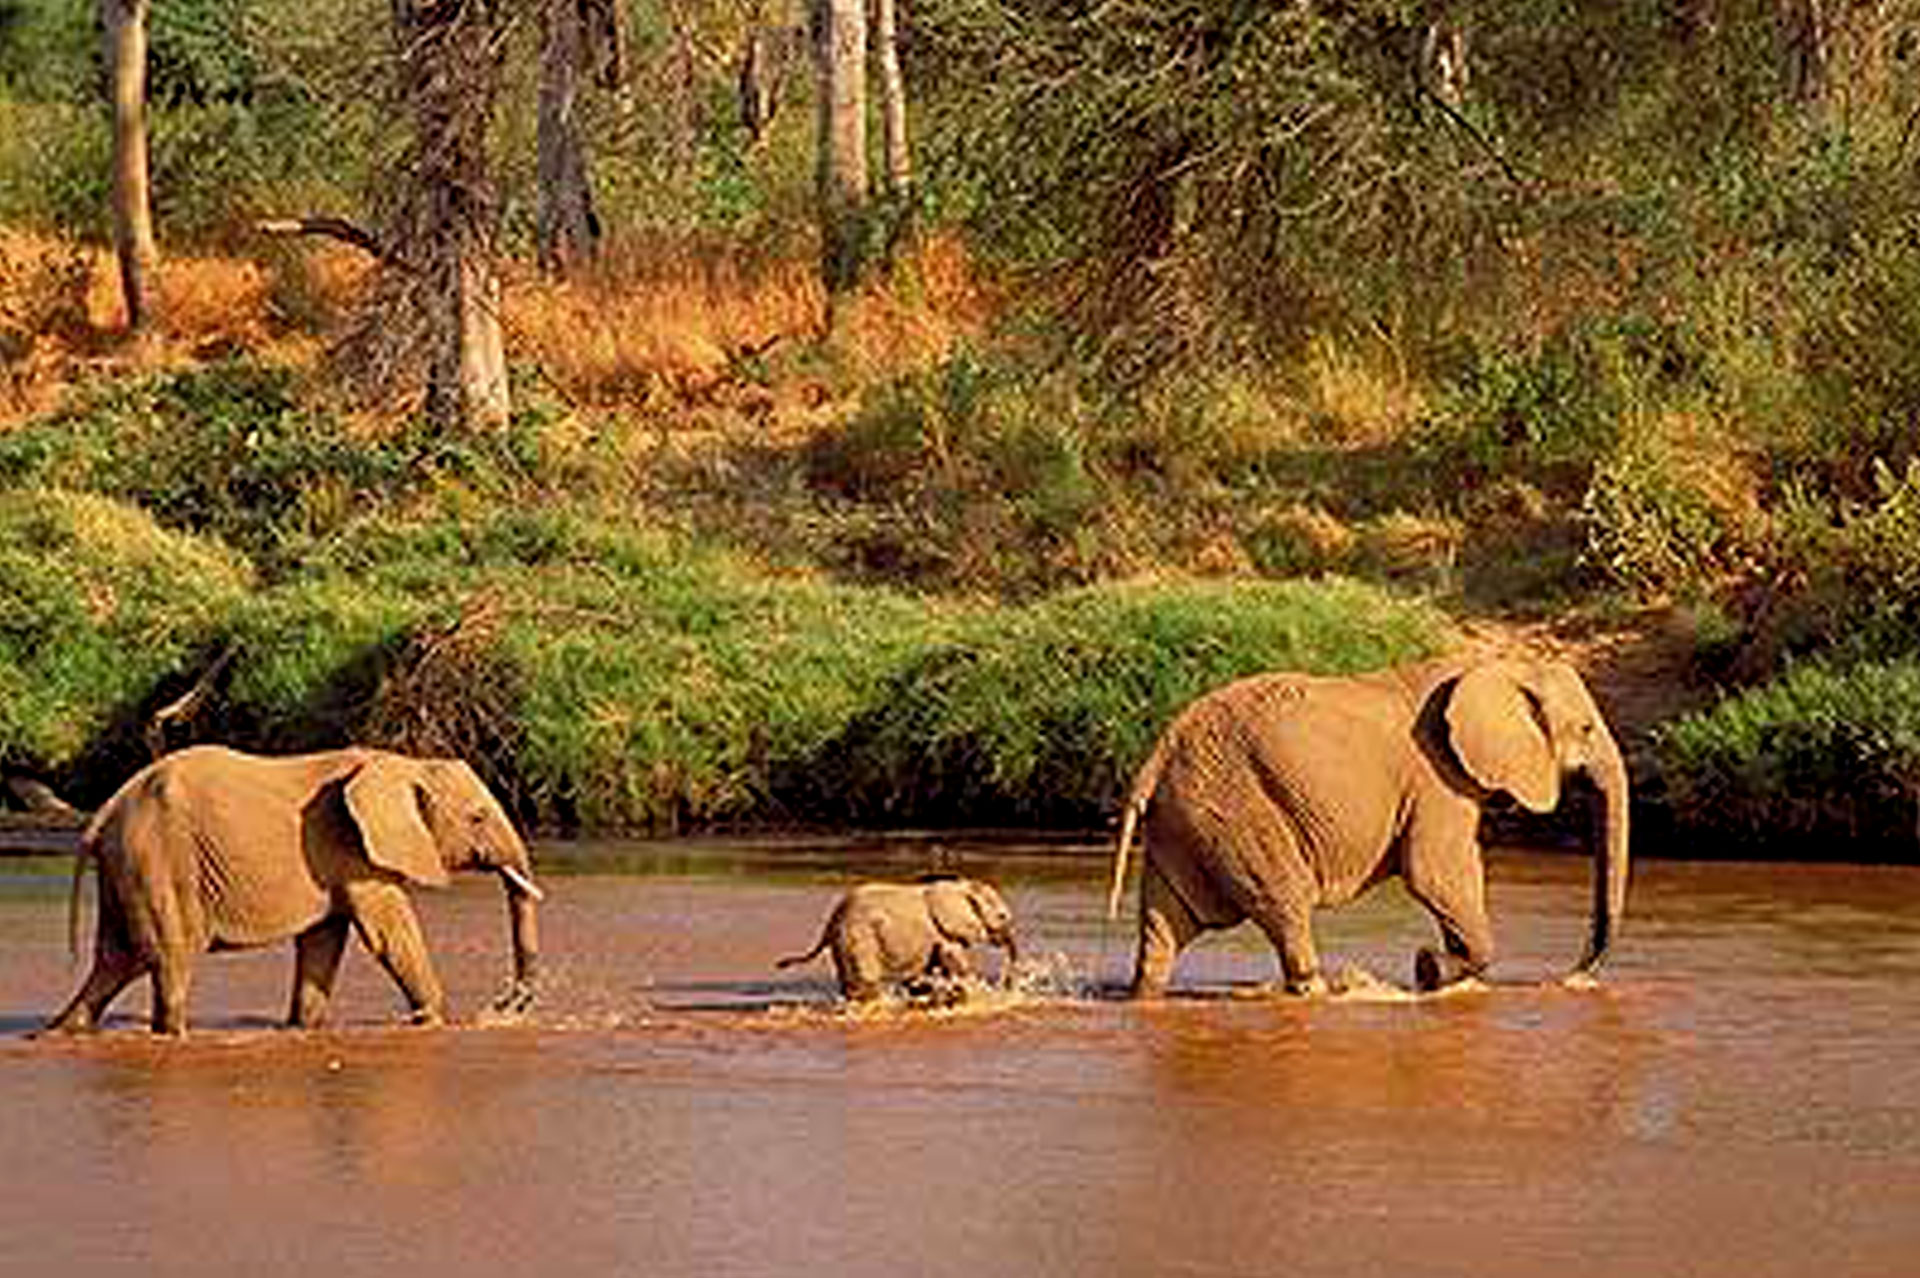 Diani_travel_center_National_Parks_in_Kenya_Tsavo_East_National_park_image_5